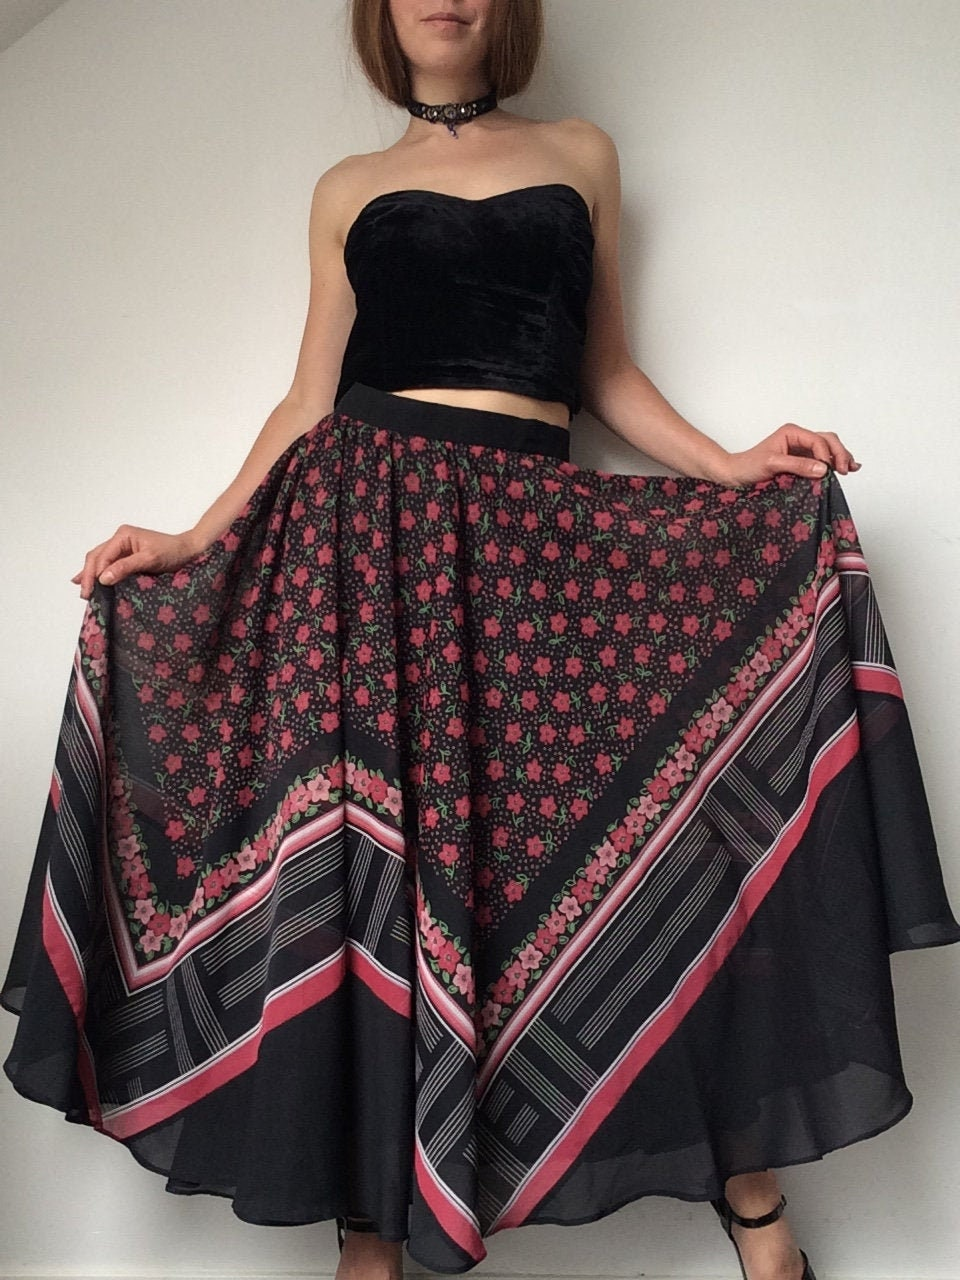 Vintage Scarf Styles -1920s to 1960s Chiffon Skirt, Hippie Flare Gipsy Bohemian, Romantic Vintage 1970s Floral Skirt $48.77 AT vintagedancer.com